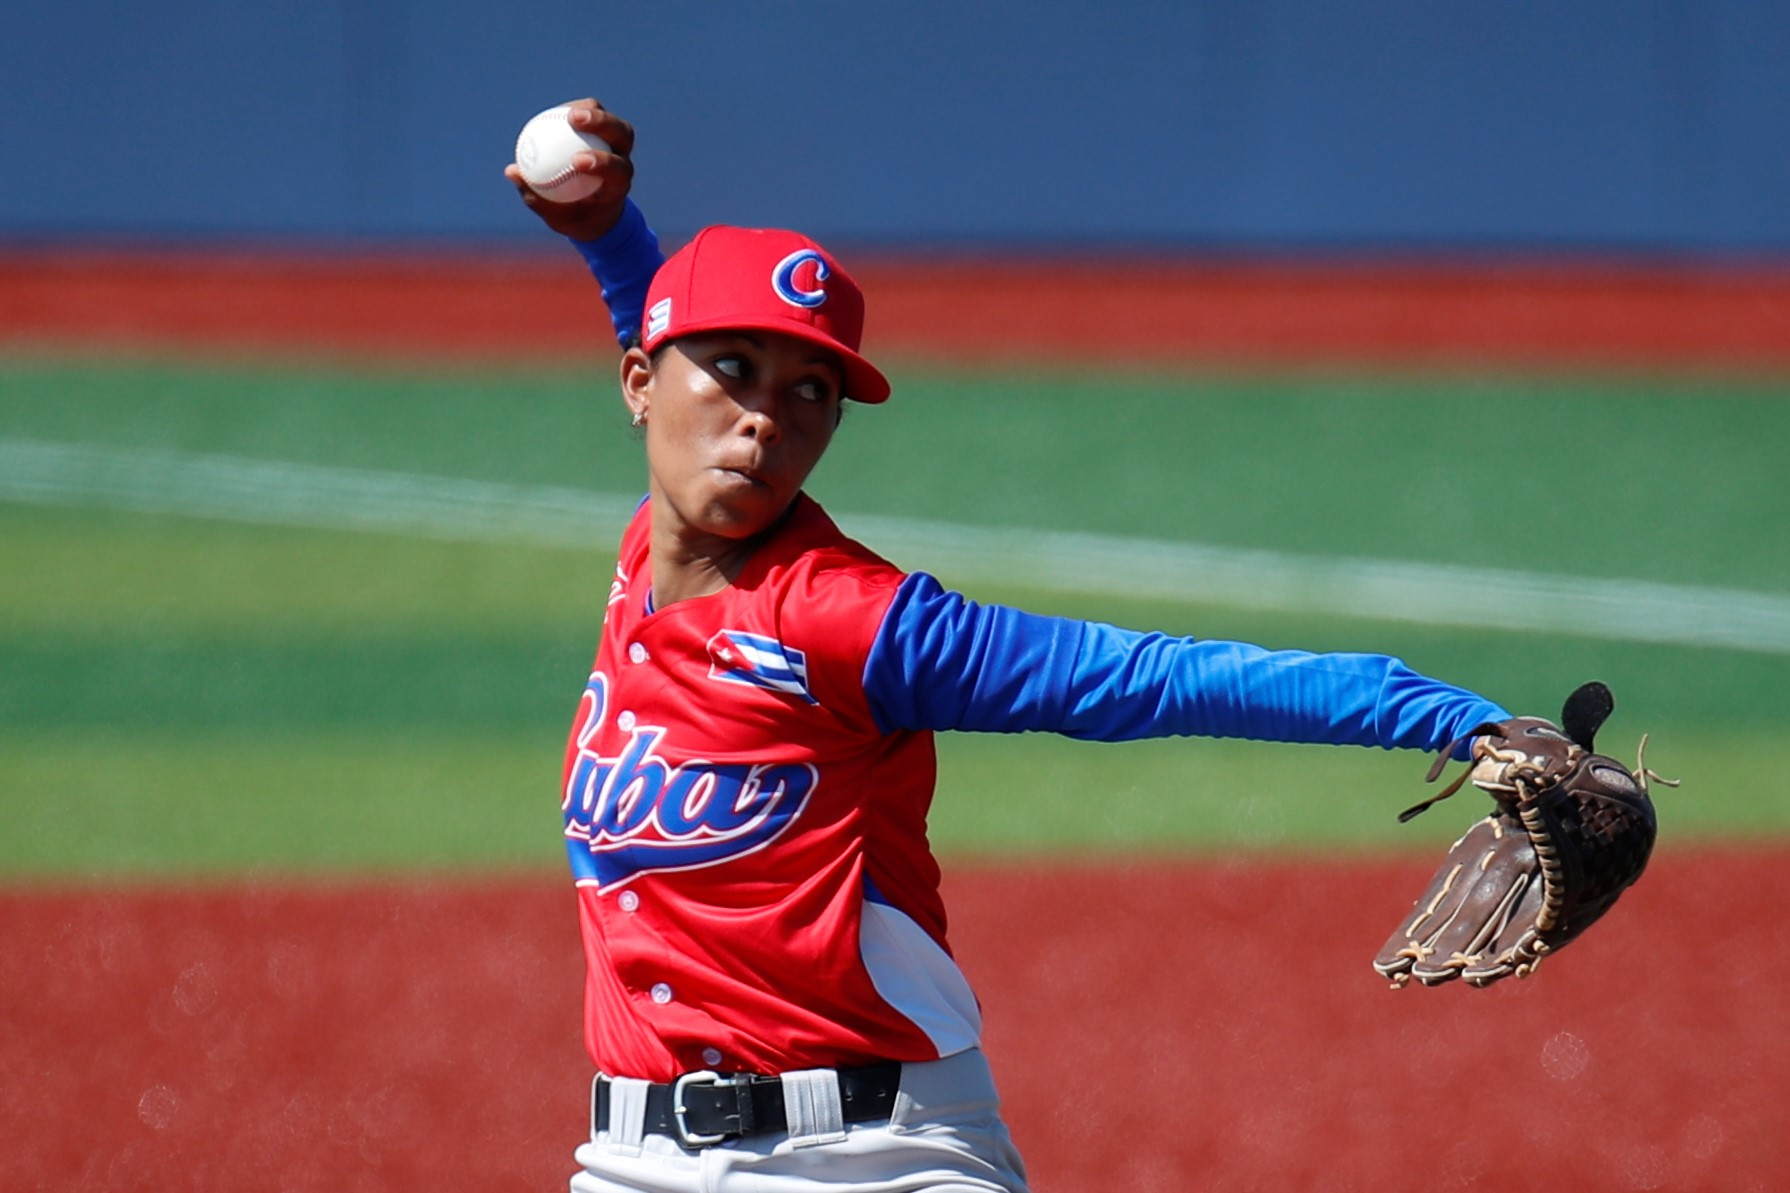 Dianelis Porro went the distance for Cuba